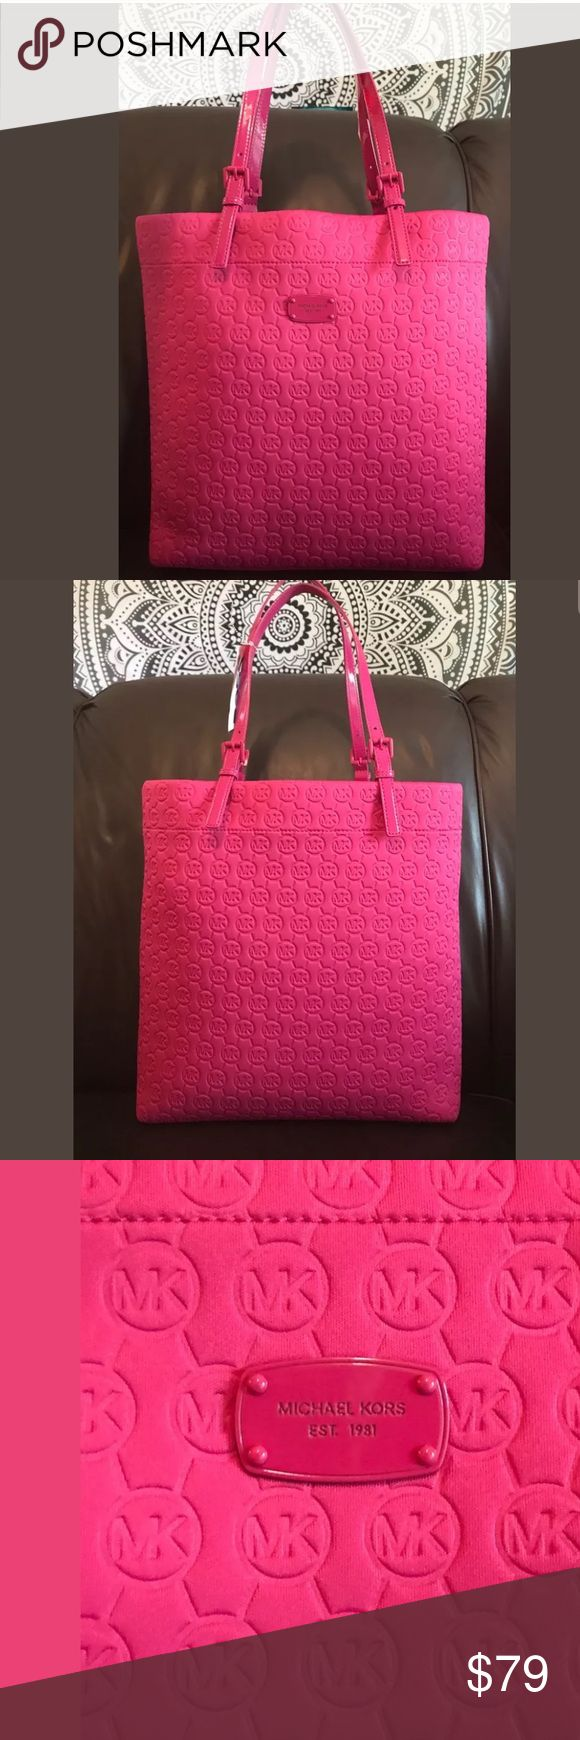 "Extra large Michael Kors Flamingo Jet Set Tote NWT I'm offering an awesome Michael Kors Extra Large Monogram Jet Set Tote, Travel, Shoulder Bag New with tags, retail cost 158.00.  It's in a beautiful vibrant summer Flamingo pink, Absolutely amazing.   It measures a generous 14.5"" x 14"" x 4"" with 10"" drop on adjustable patent leather handles.  The interior is lined in cream with compartments to stay organized. This Tote is very roomy, great for travel or shopping, an awesome quality Bag…"